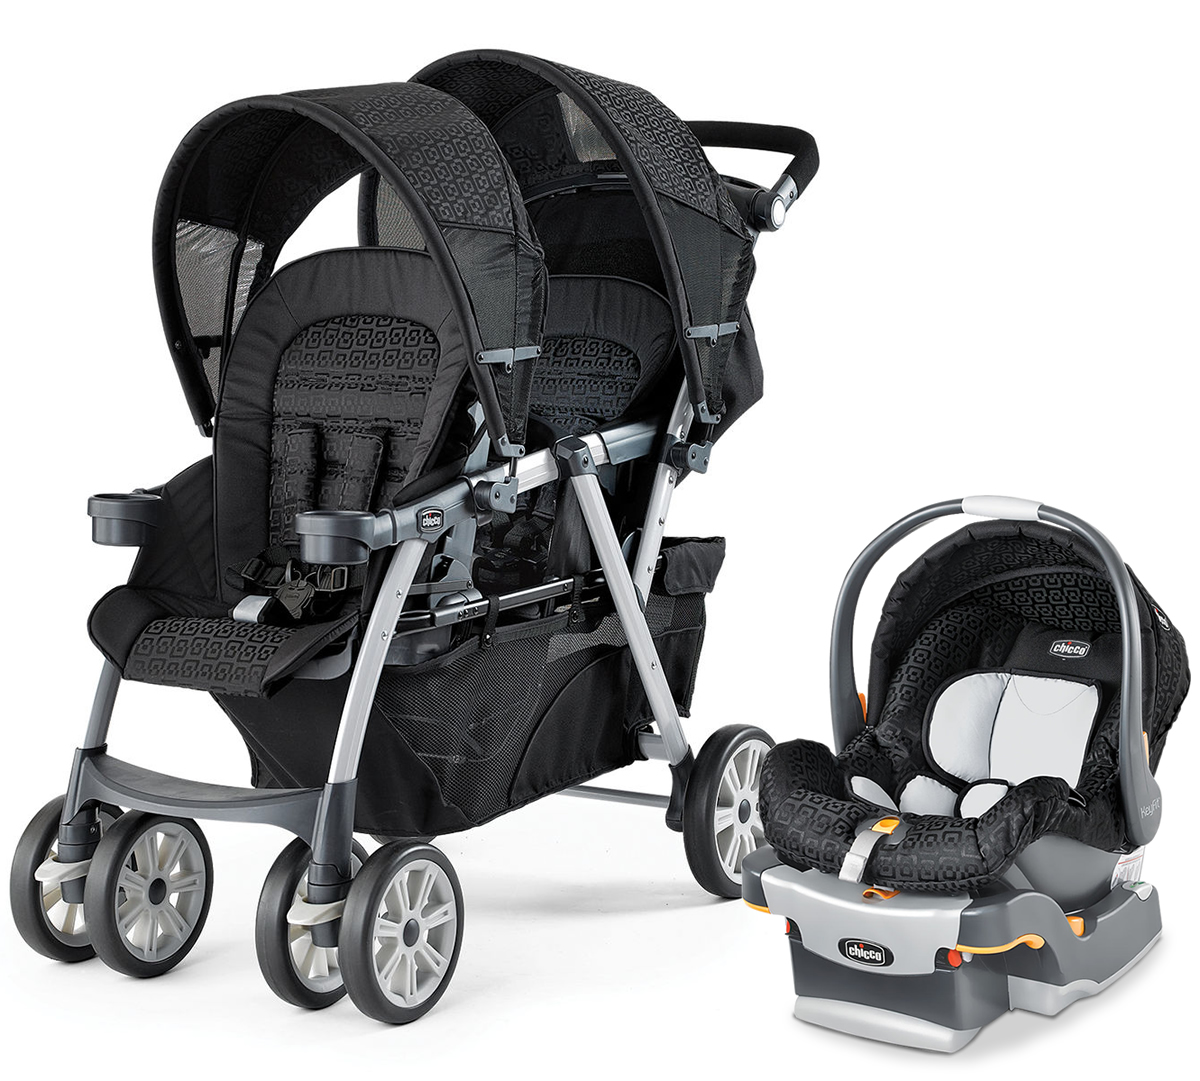 Chicco Cortina Together Stroller Keyfit 22 Car Seat